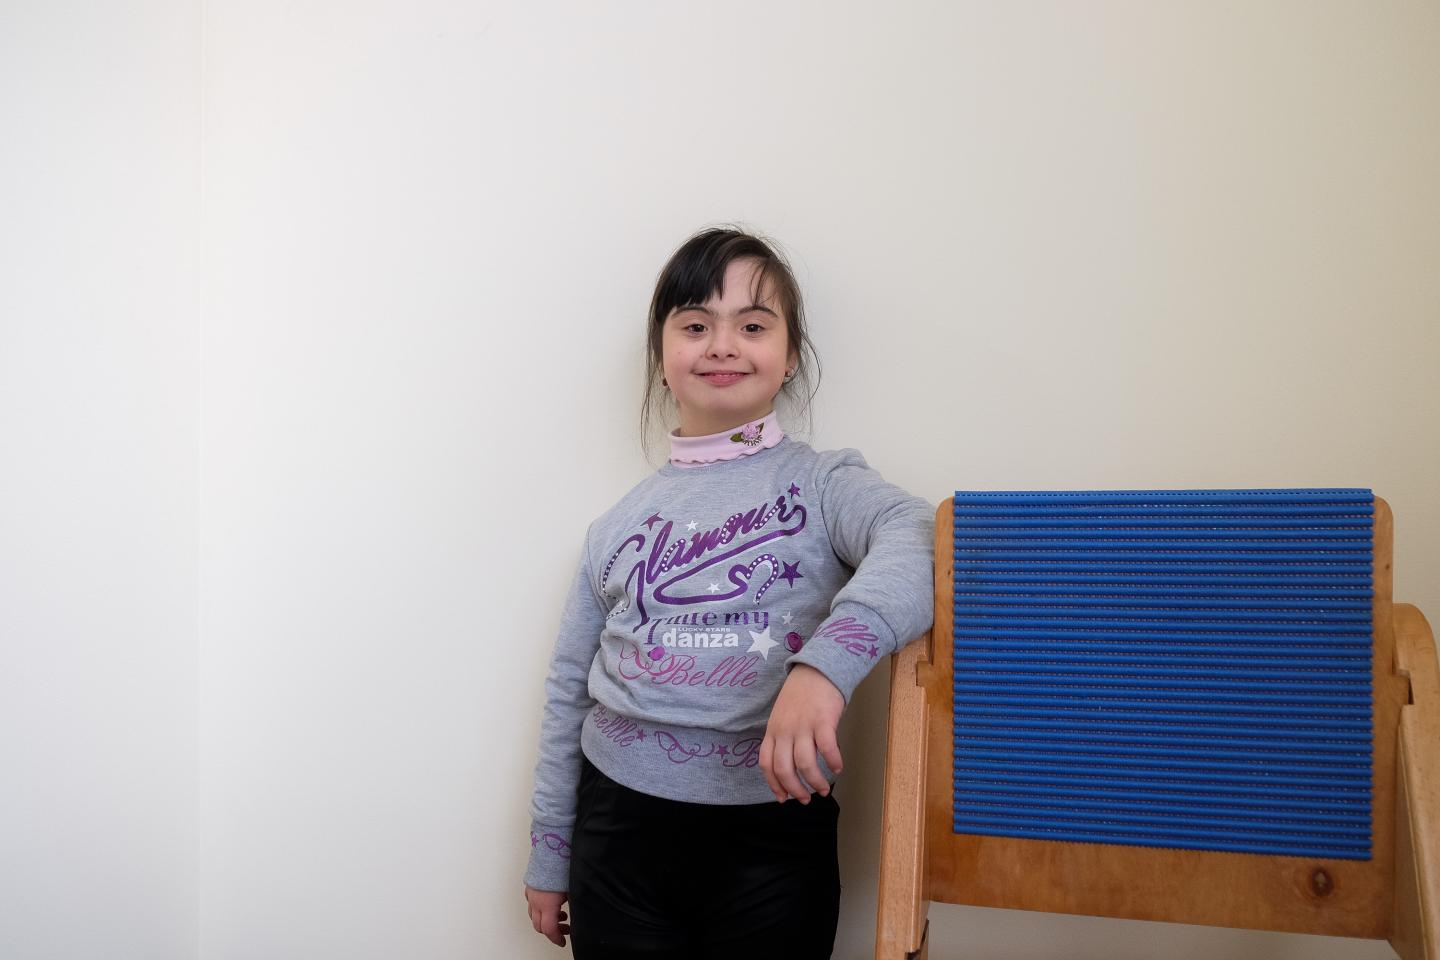 10-year-old Karina who has Down syndrome poses for the camera at the UNICEF-supported community centre for children with disabilities in Borjomi, Georgia.